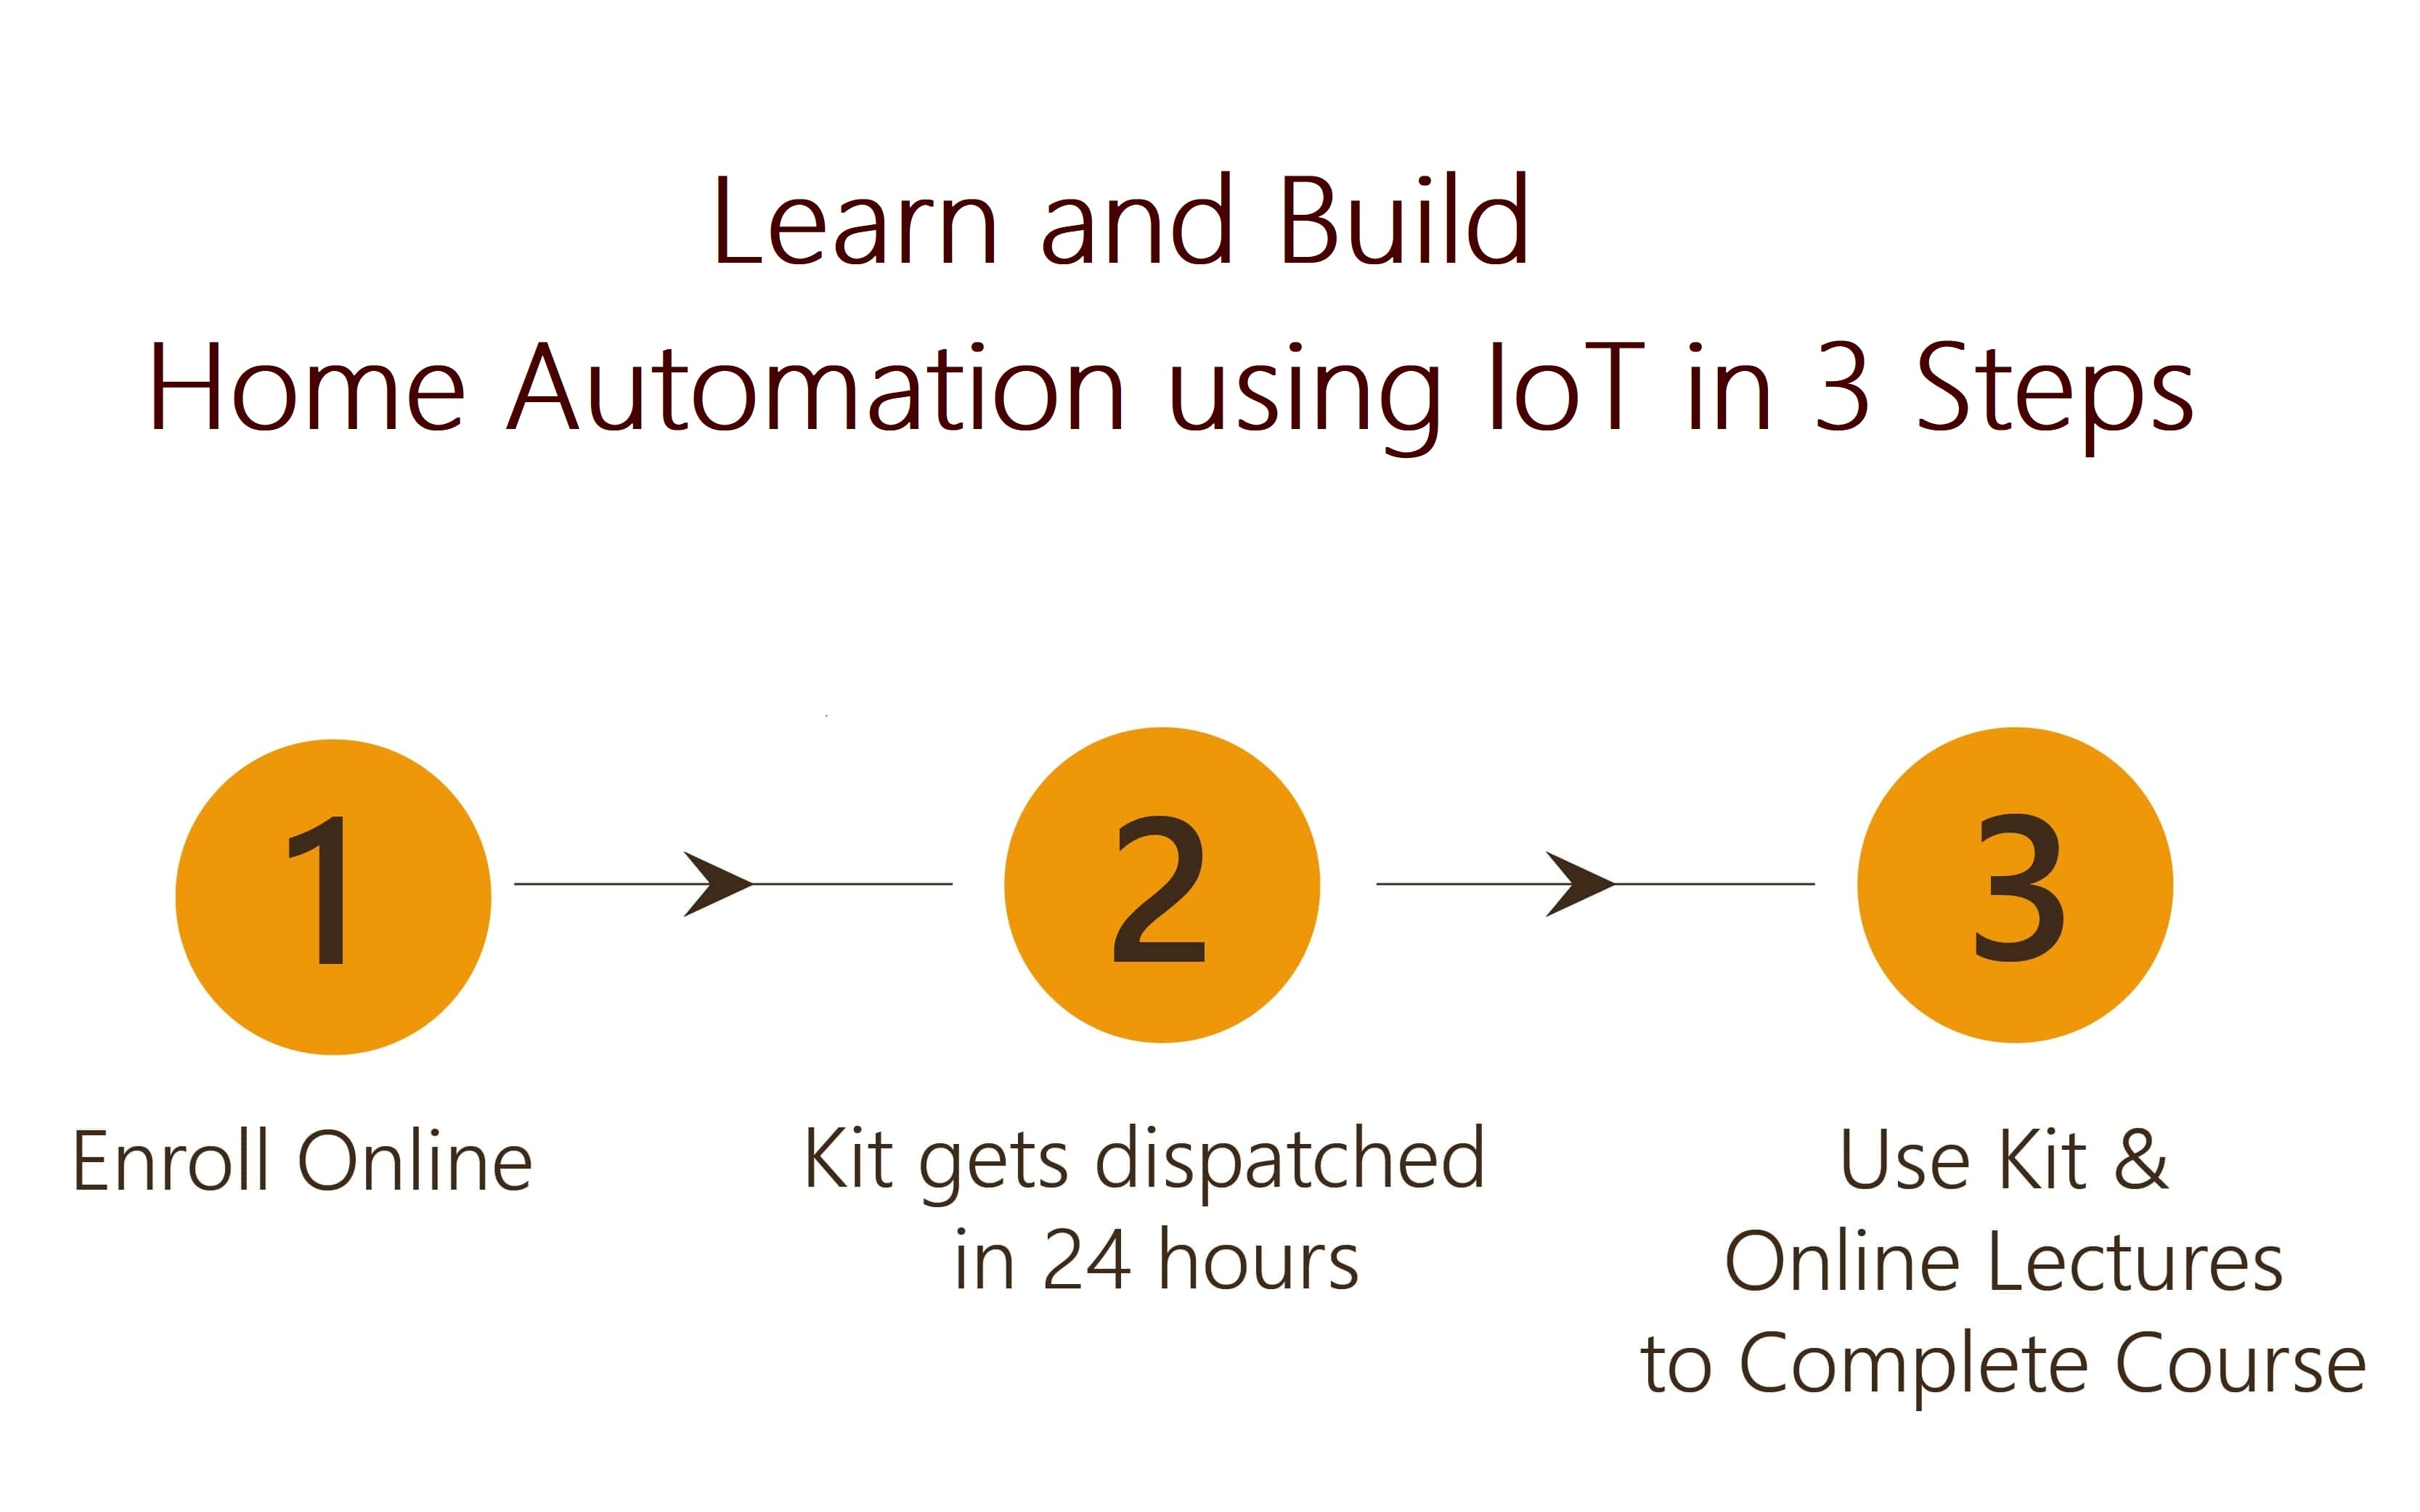 Design and Build Home Automation System using IoT Project in 3 Steps